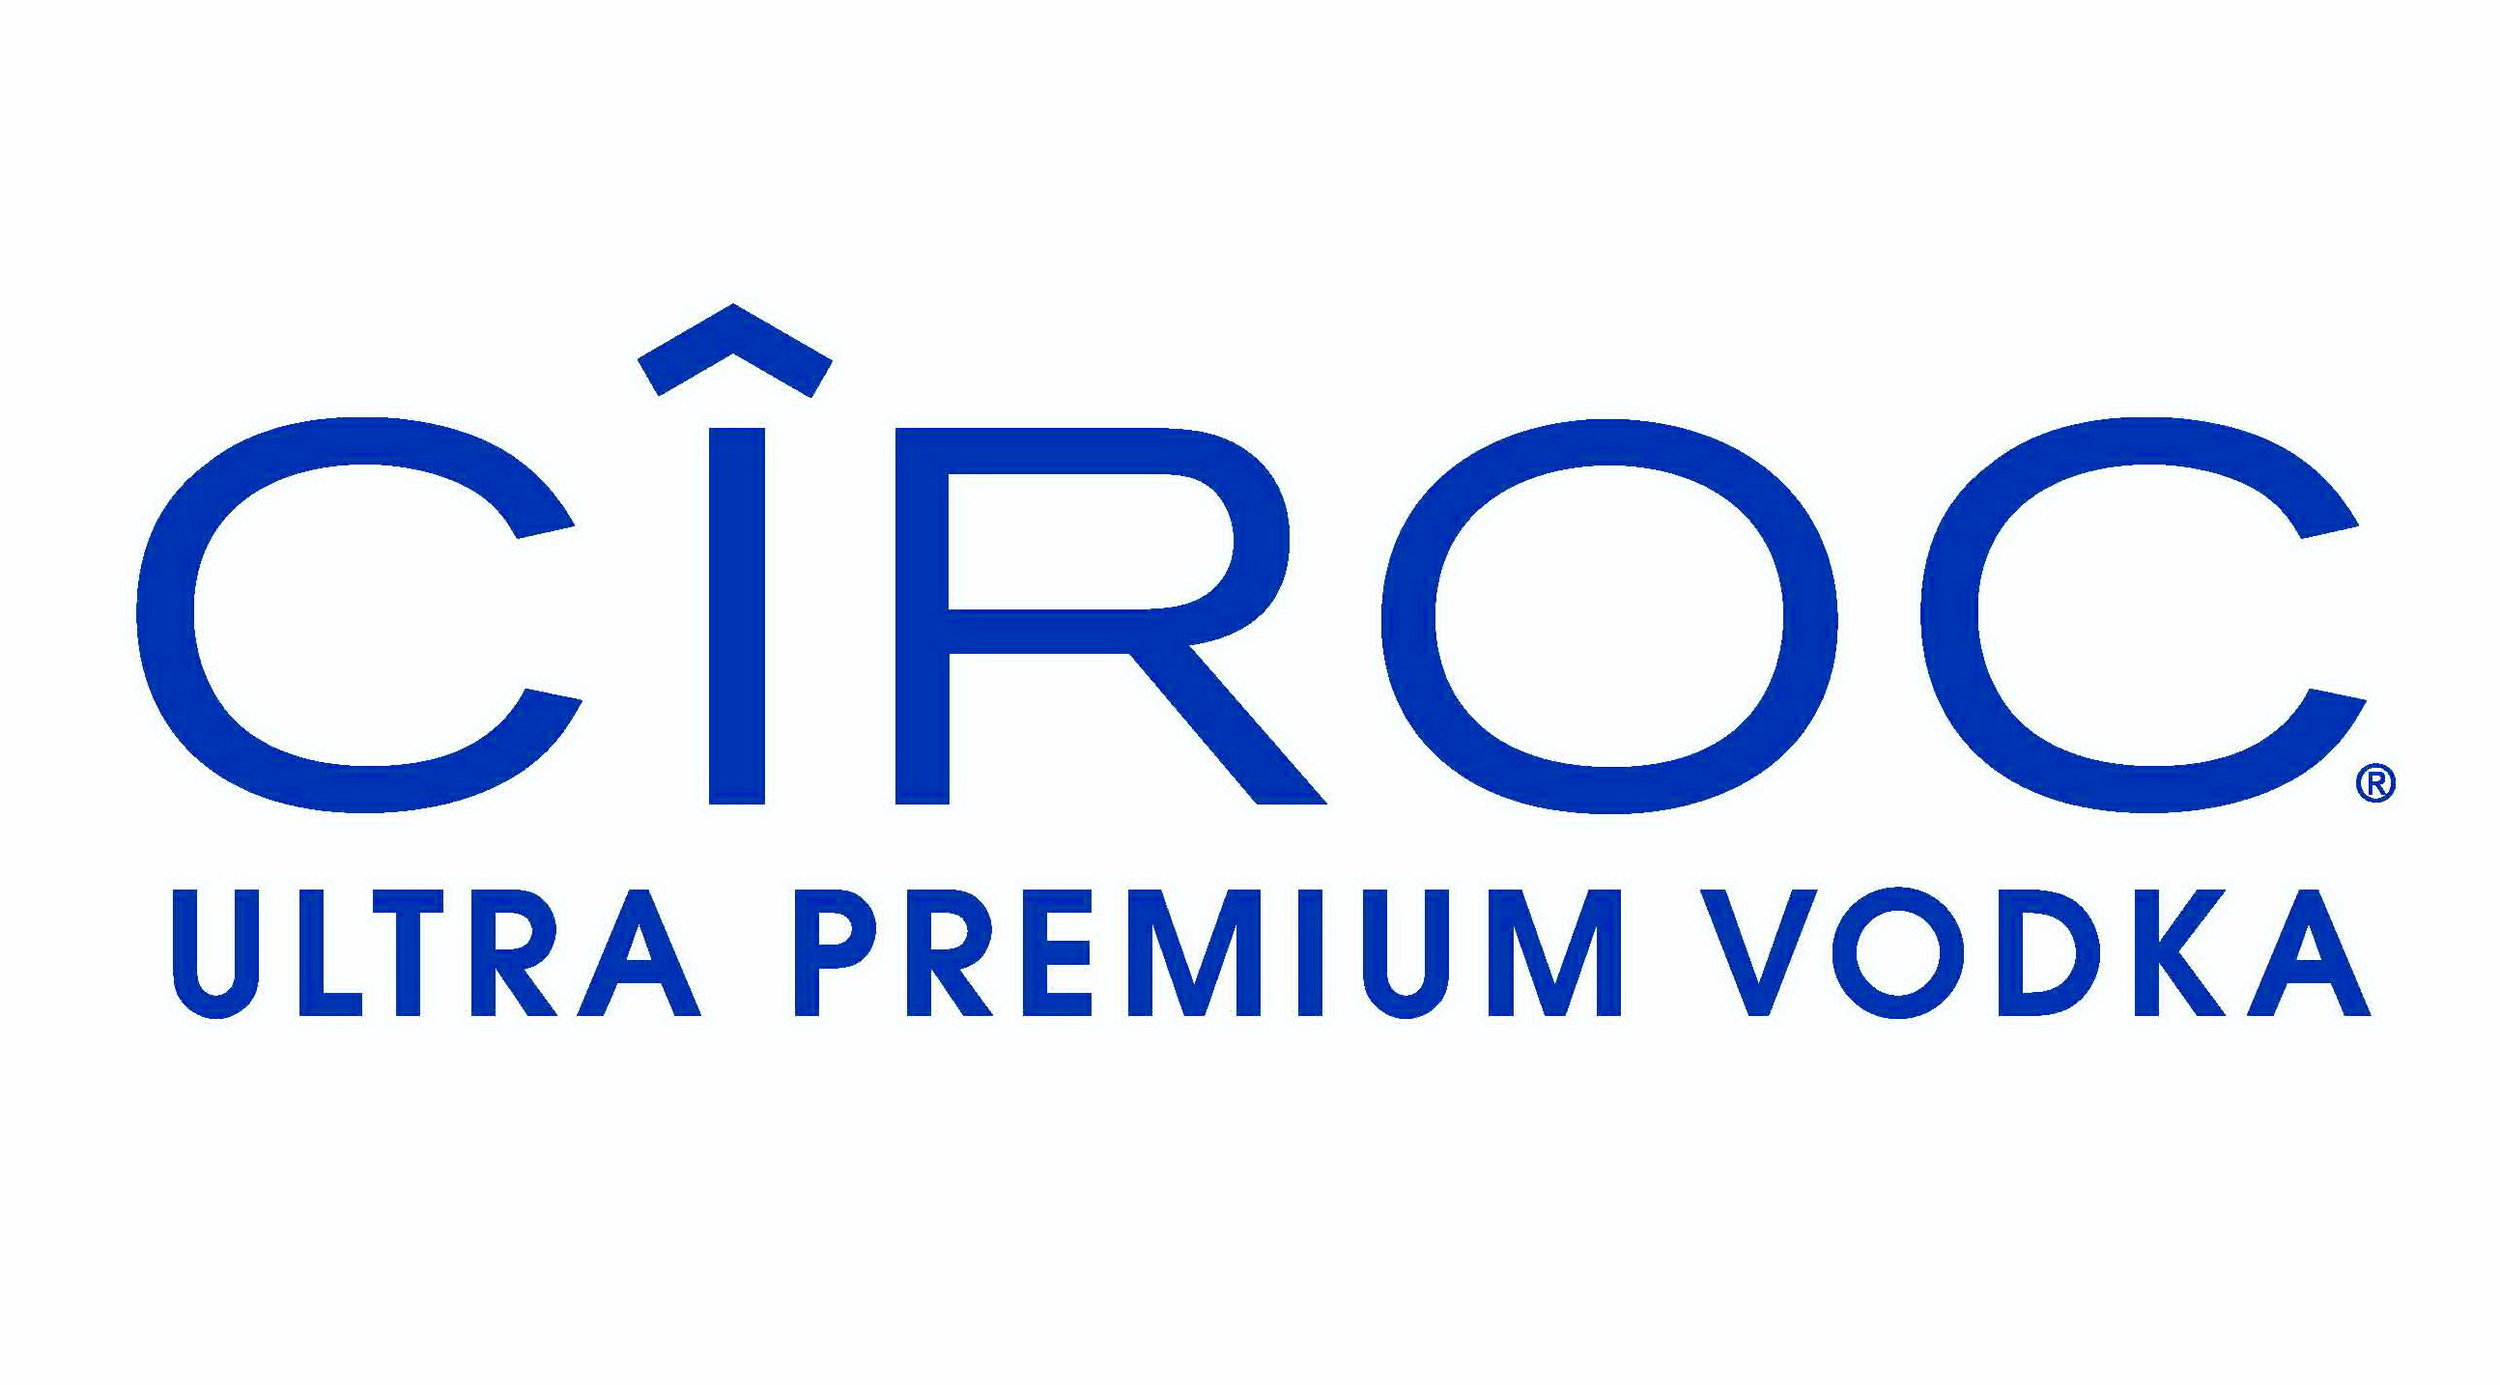 Click the logoto visitthe Ciroc website! -